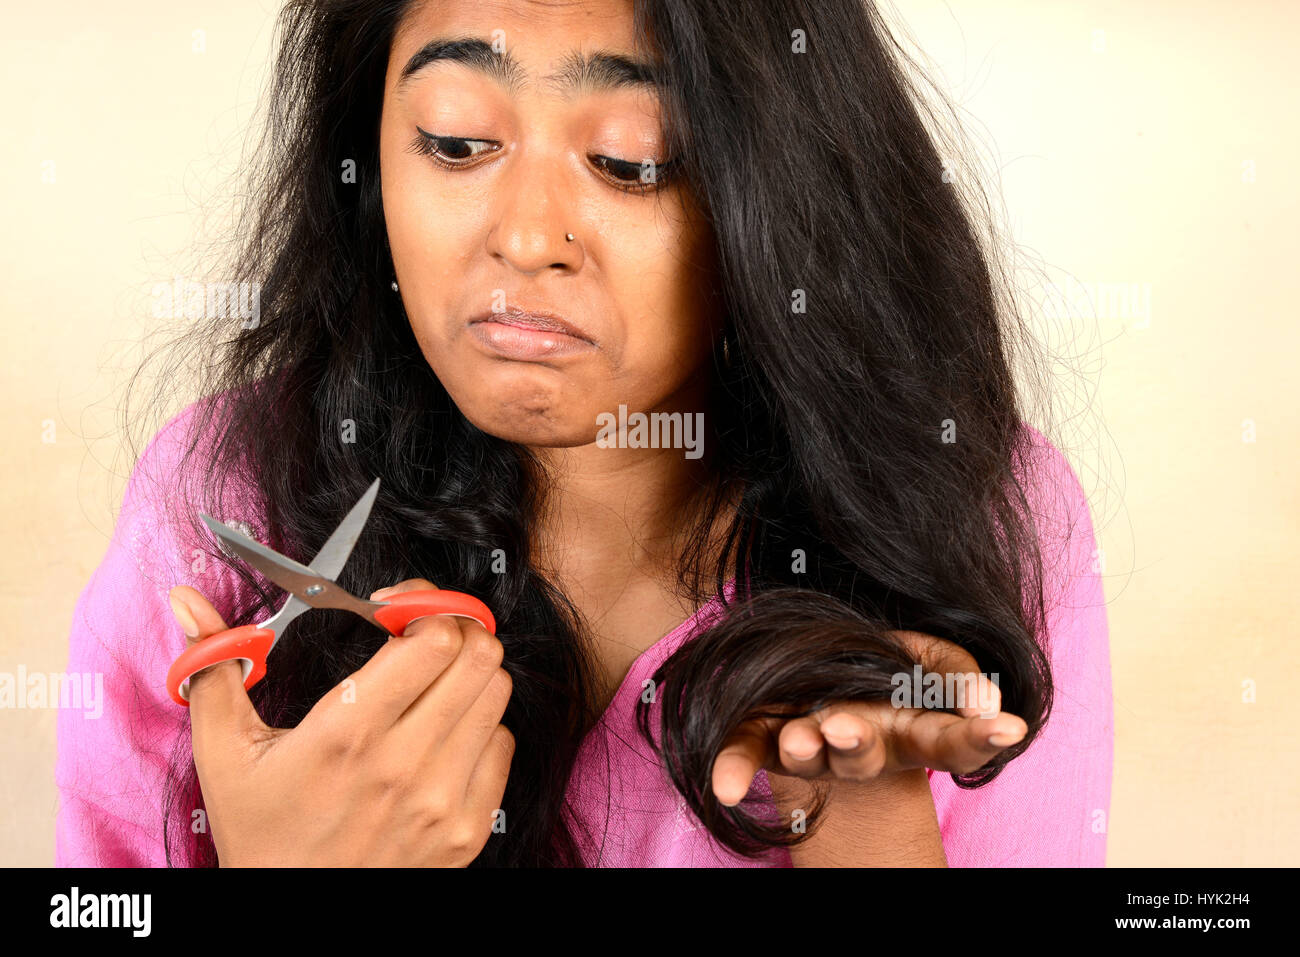 disturbed-because-of-hair-cutting-prpspe